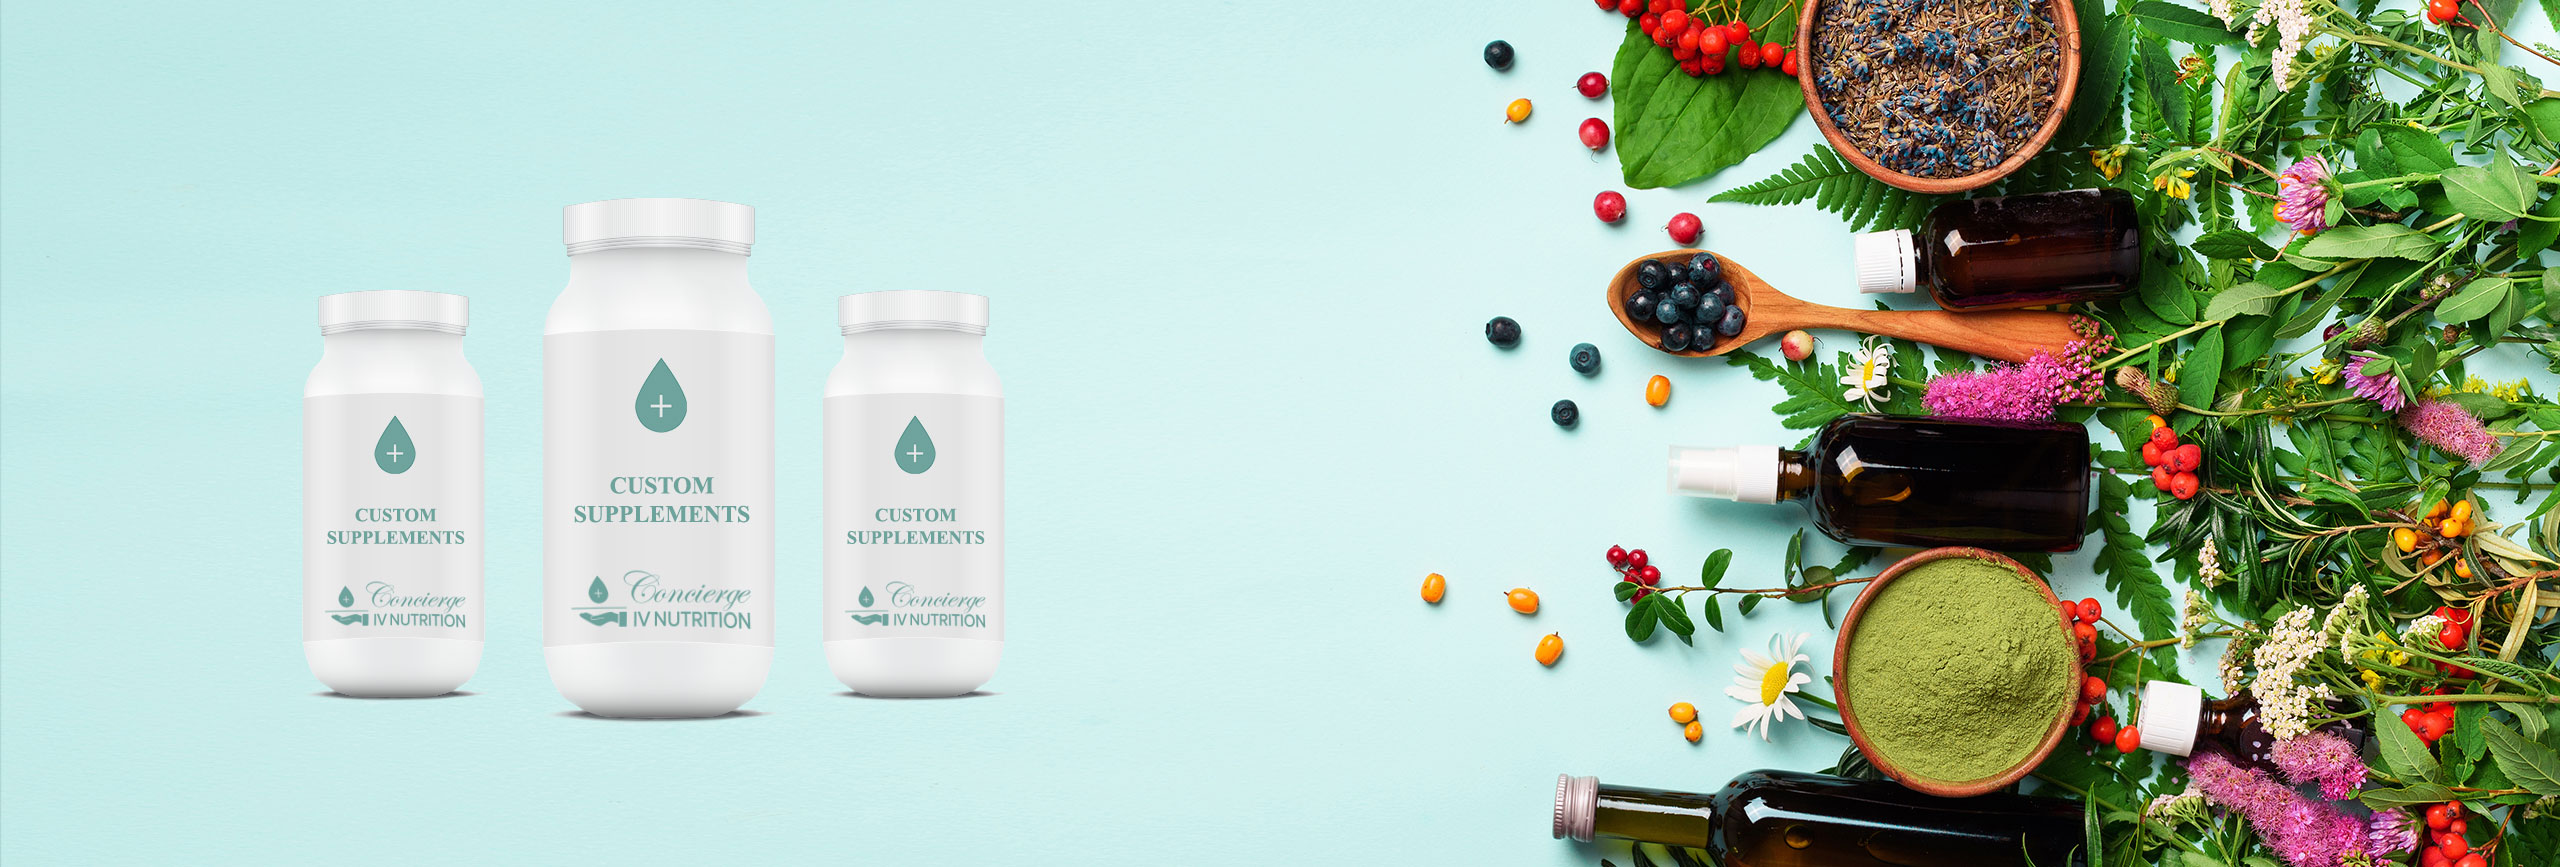 Personalized Supplements